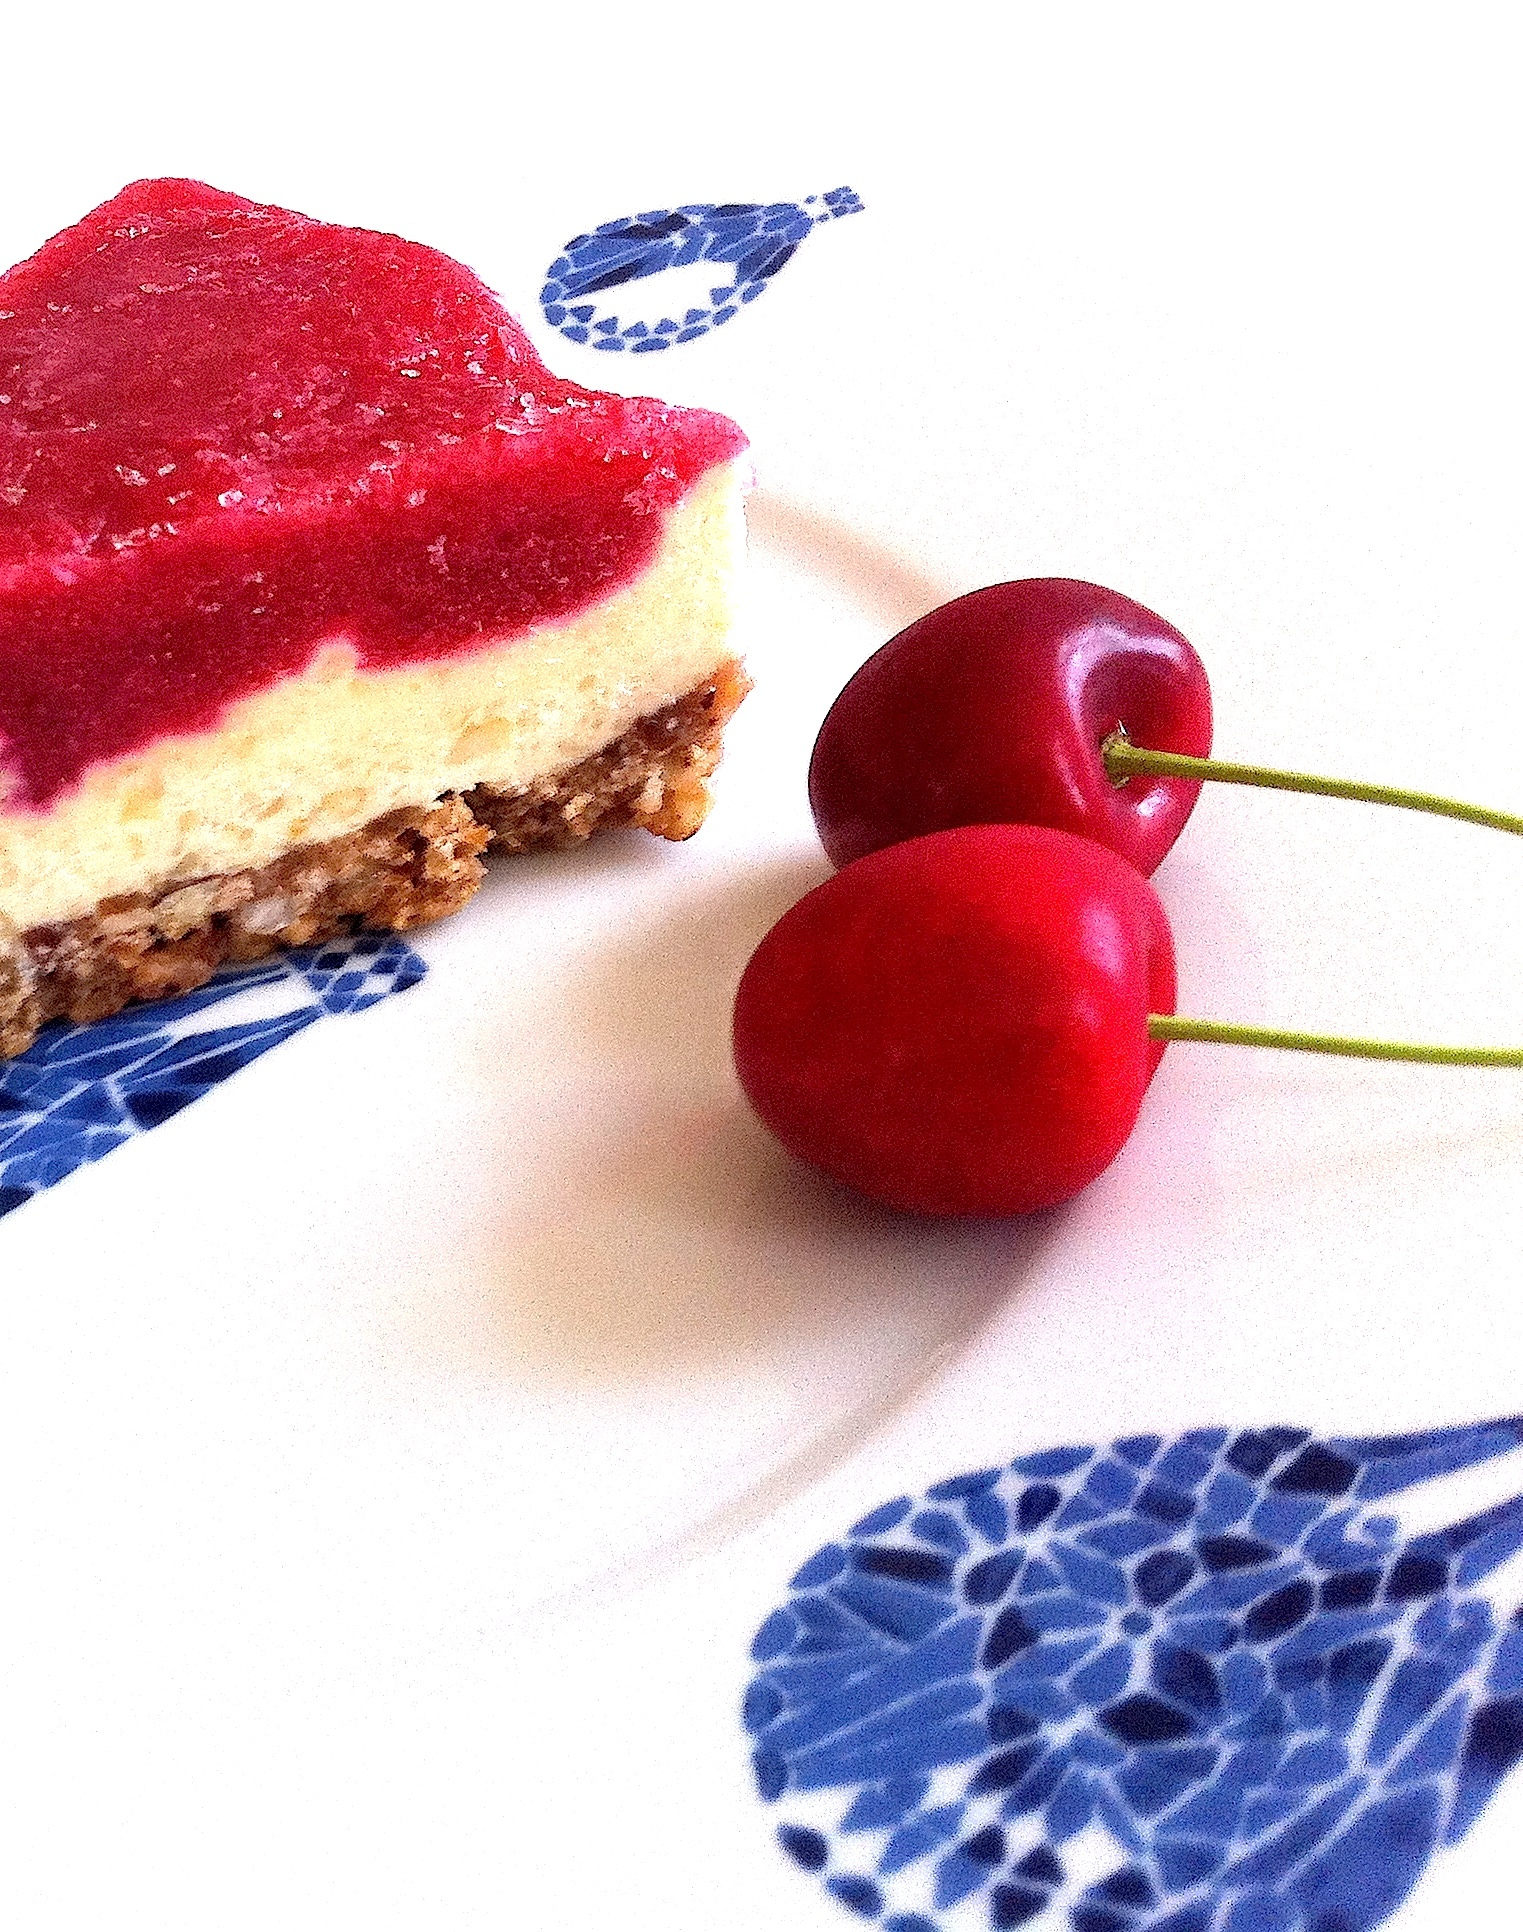 Vegan cheesecake recept